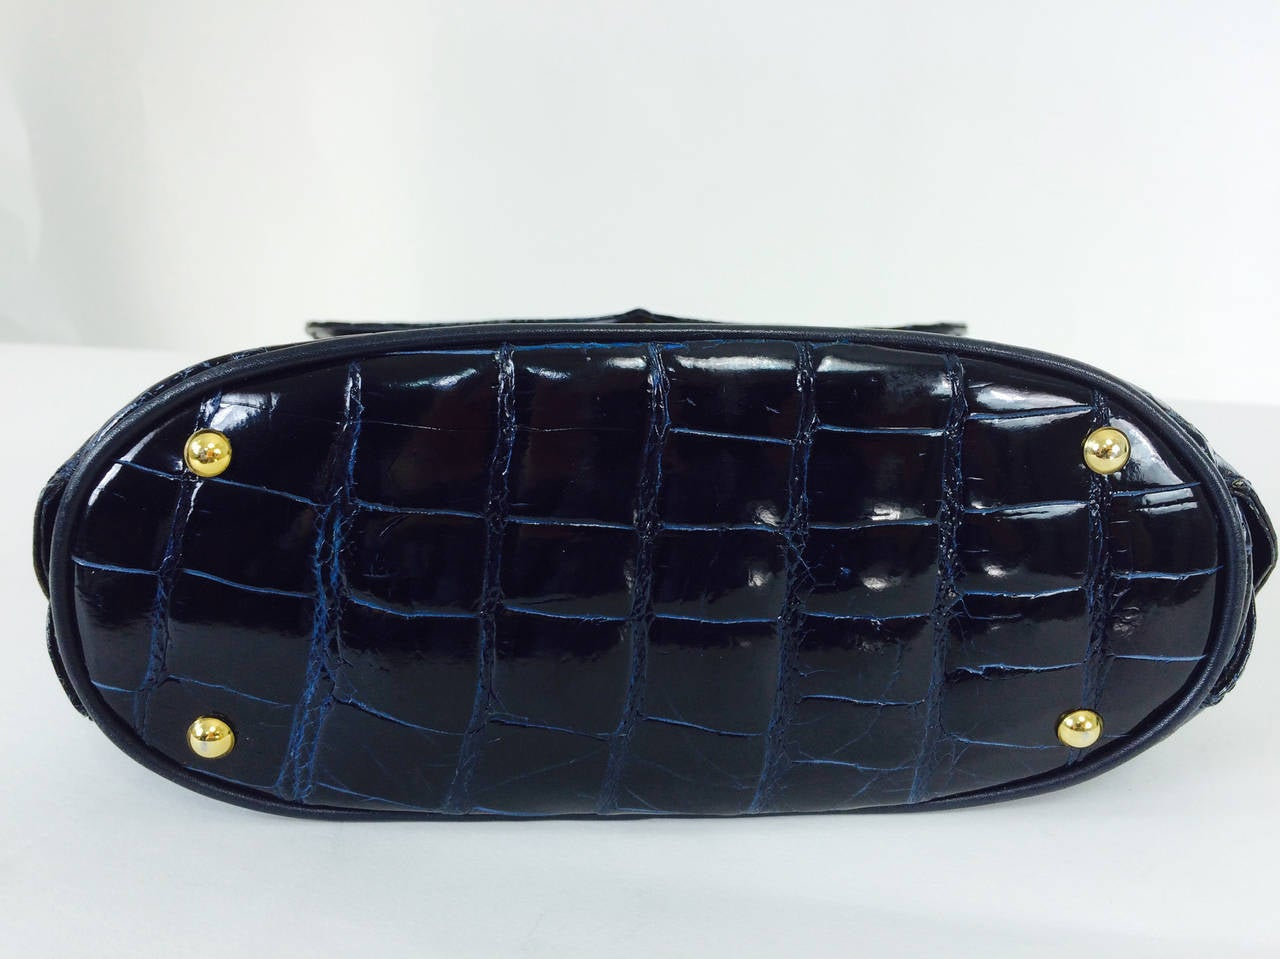 Lana Marks Lana of London navy blue glazed alligator handbag 1980s For Sale 3